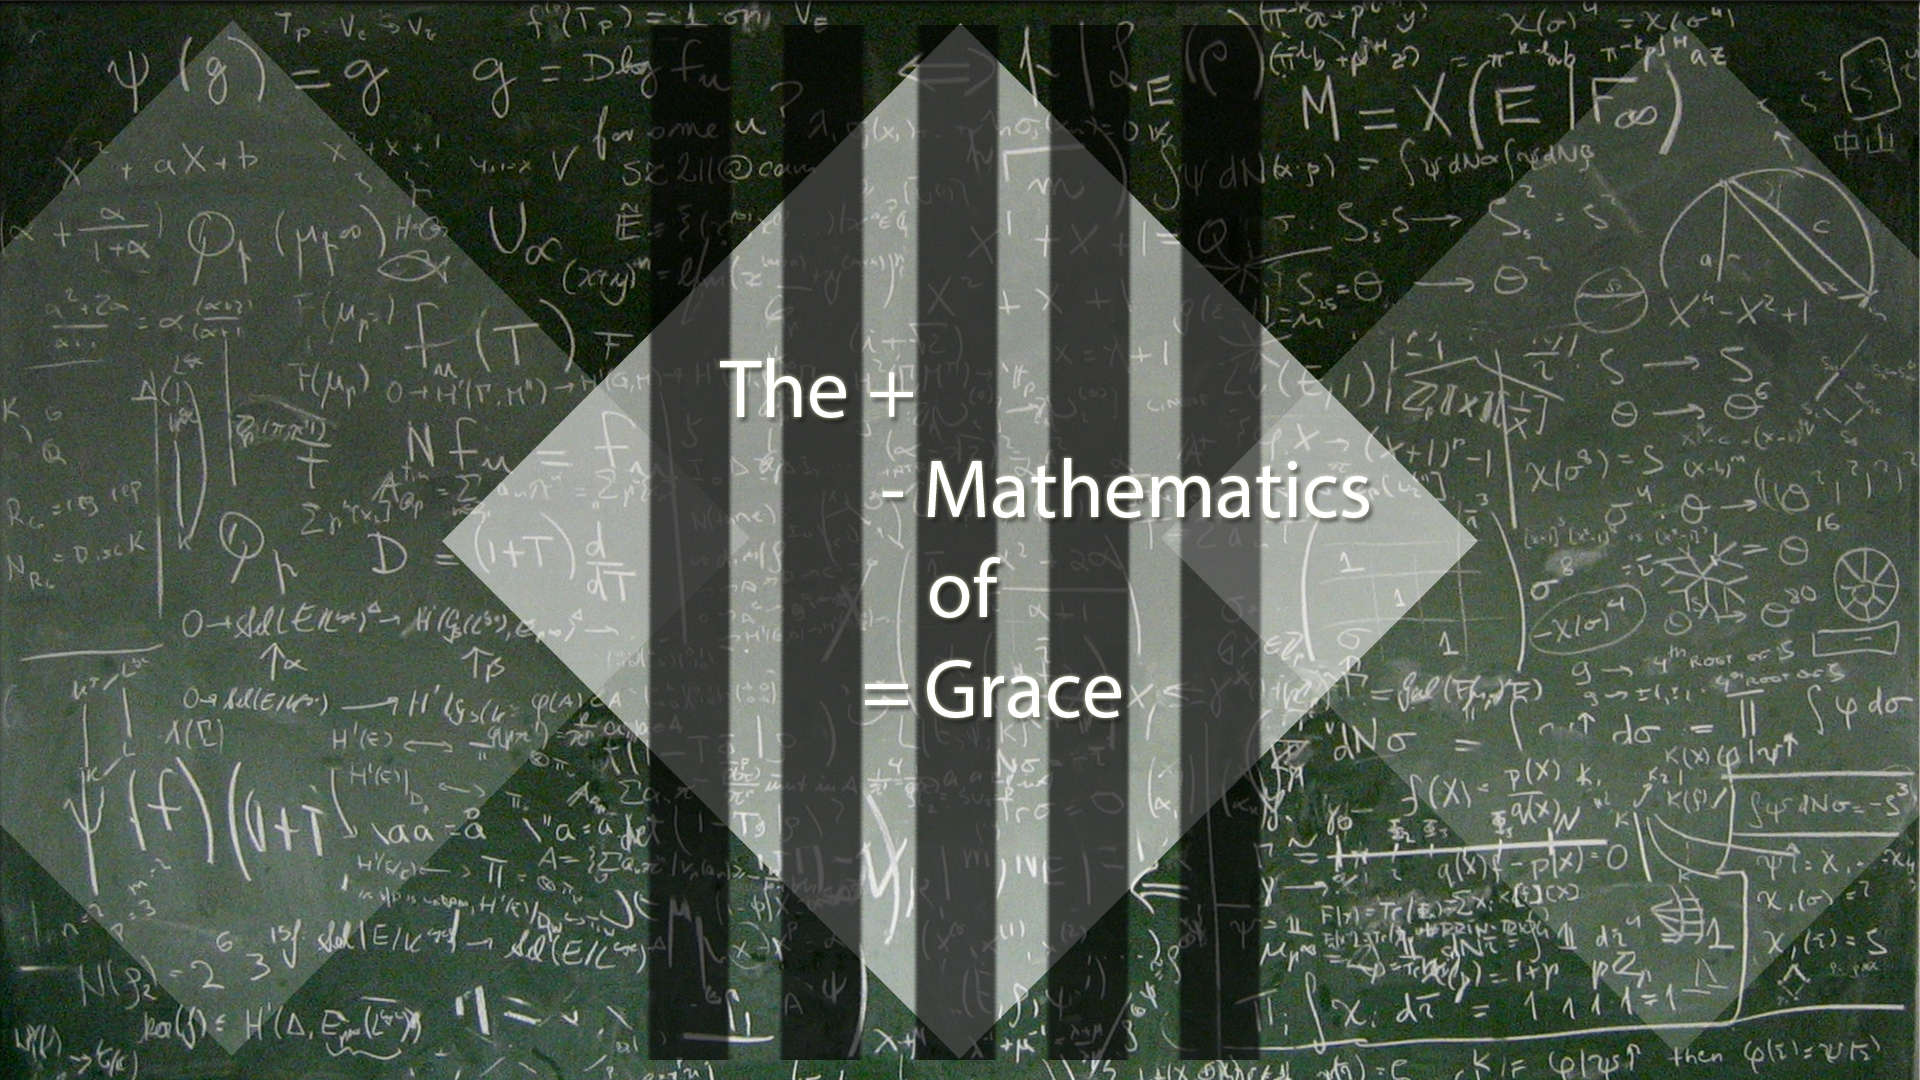 The Mathematics of Grace